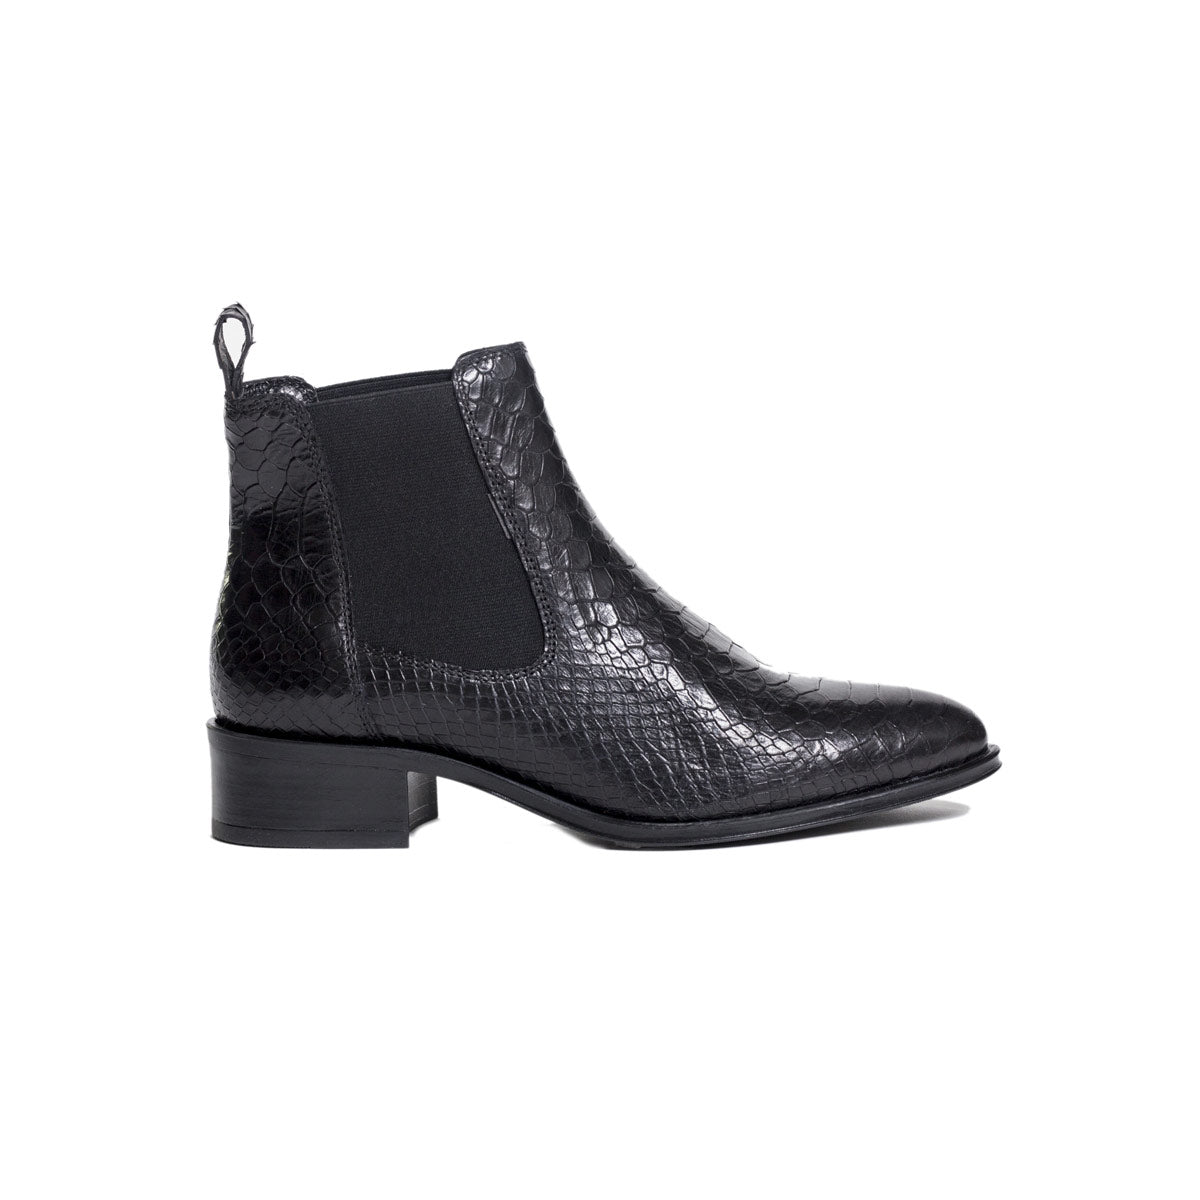 Ateliers Bobby Boot- Snake leather Chelsea boot on a stacked heel